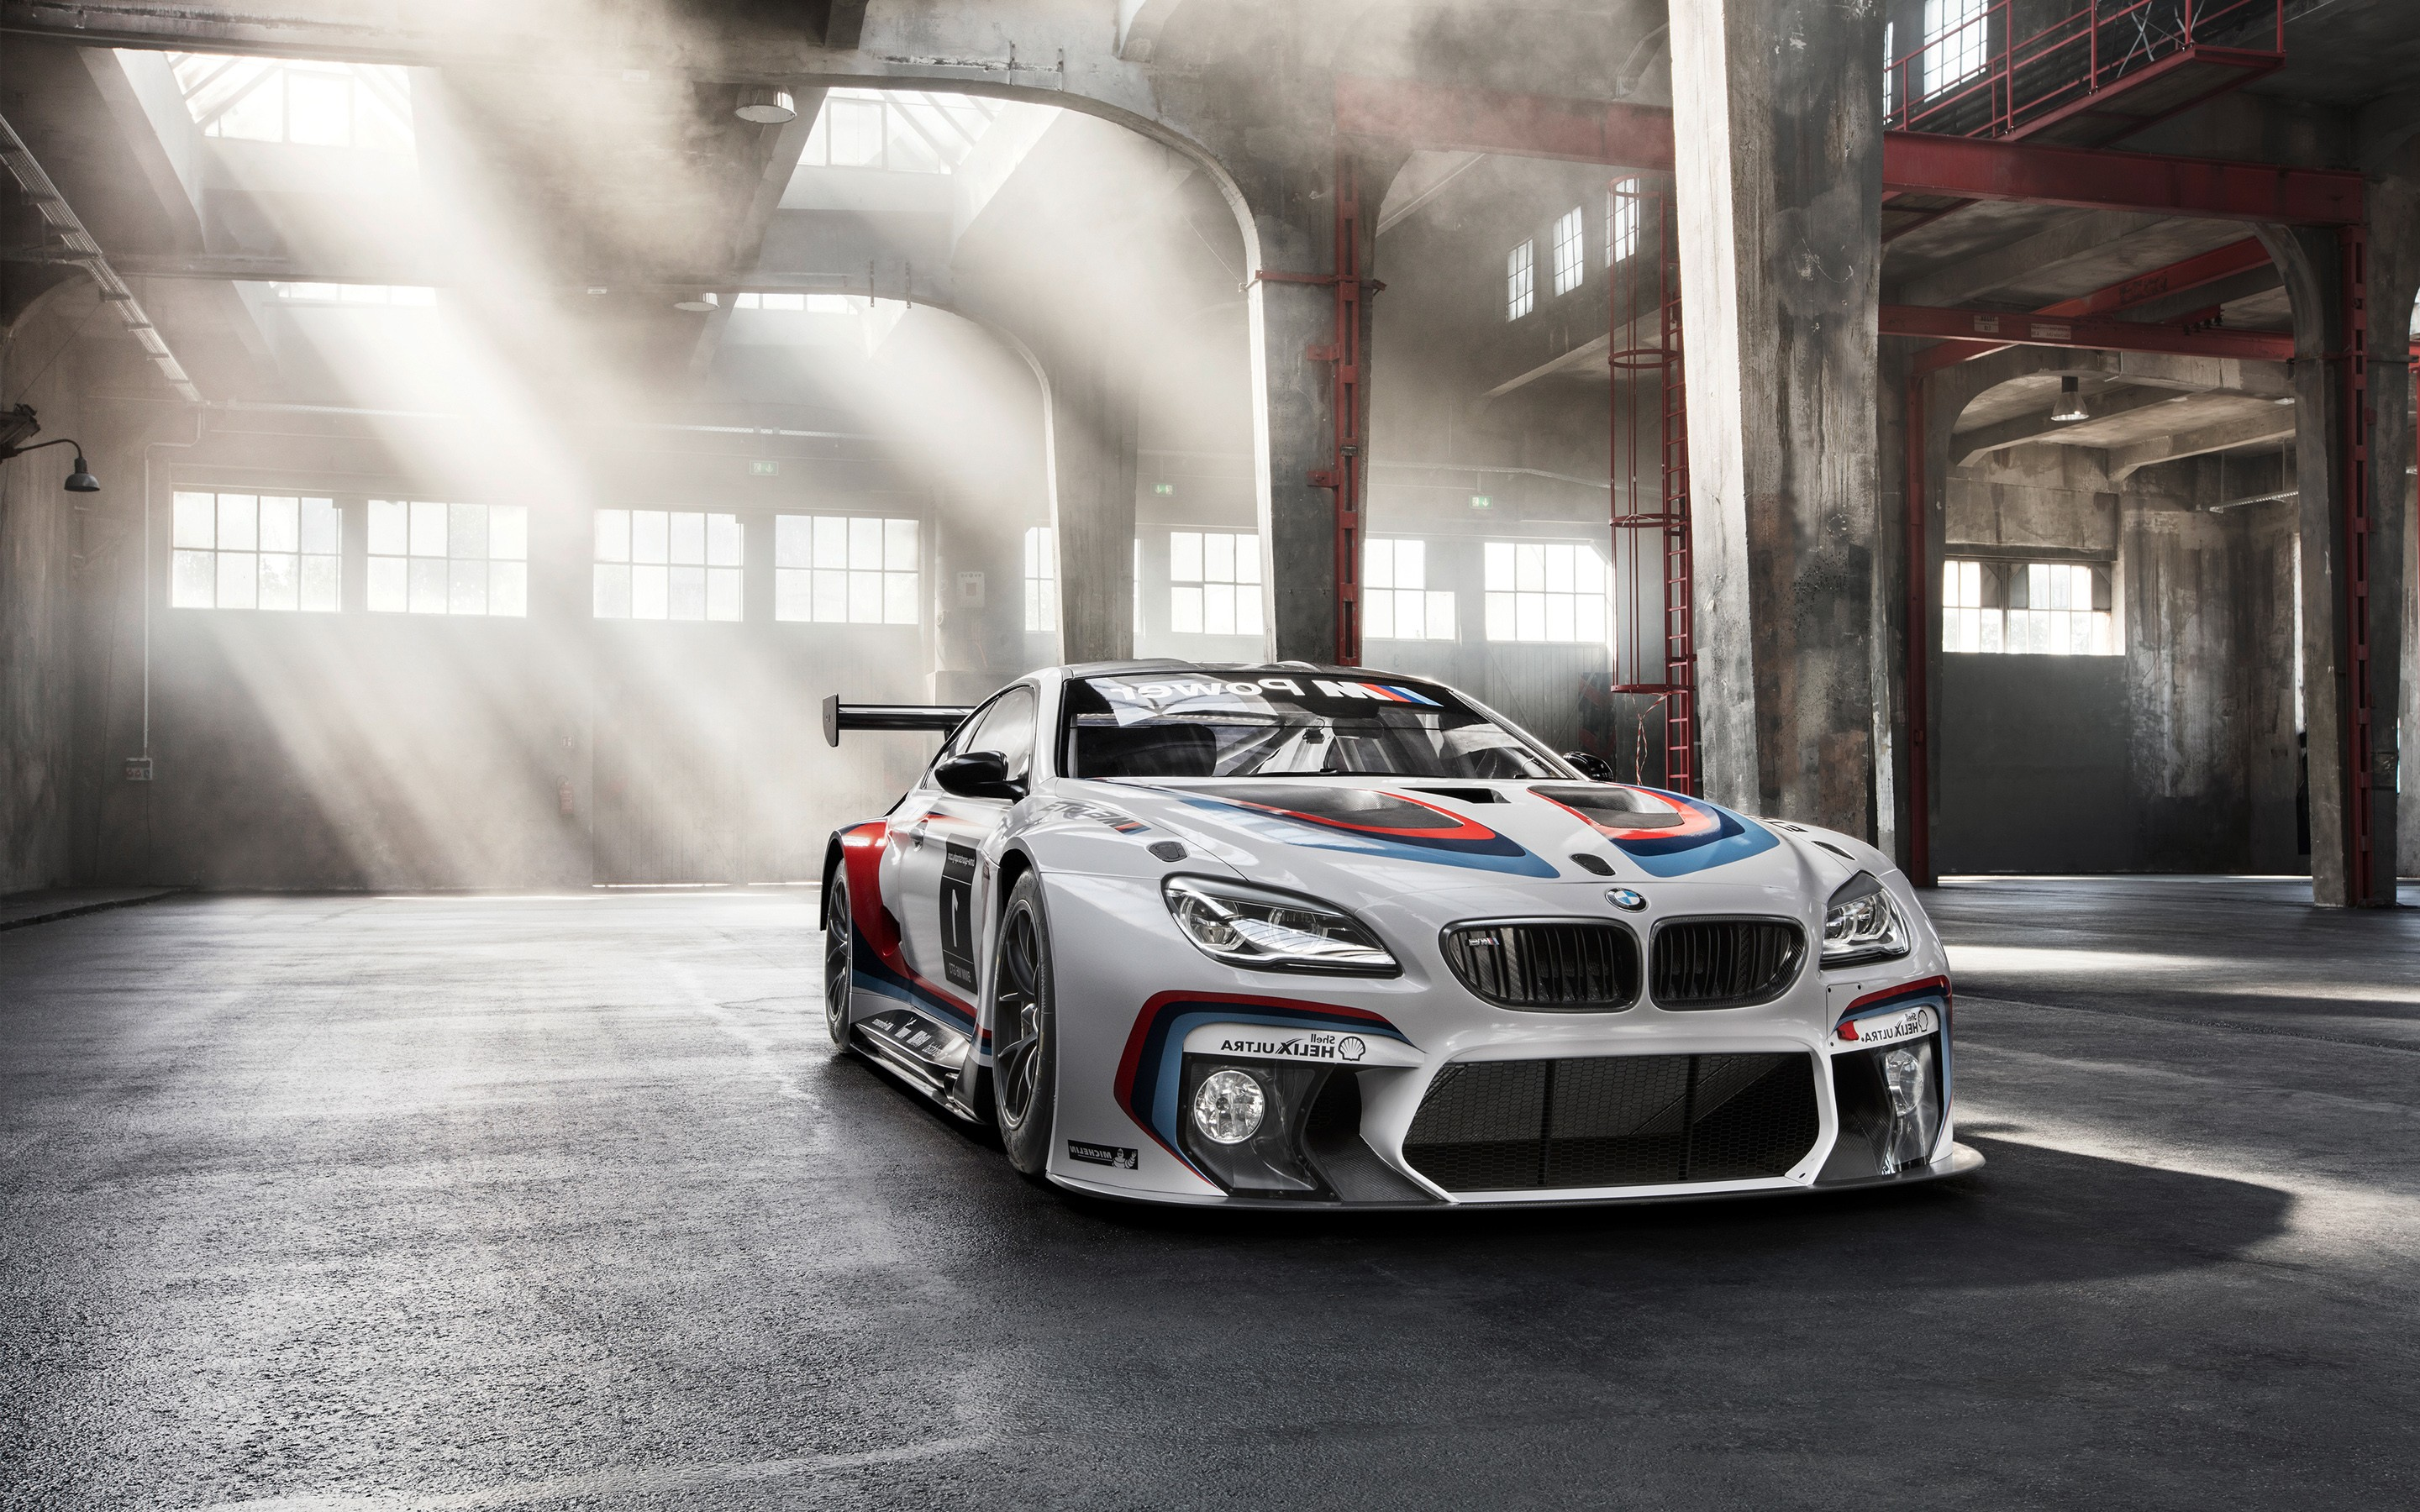 Cute Computer Wallpaper Backgrounds Bmw M6 Gt3 Hd Cars 4k Wallpapers Images Backgrounds